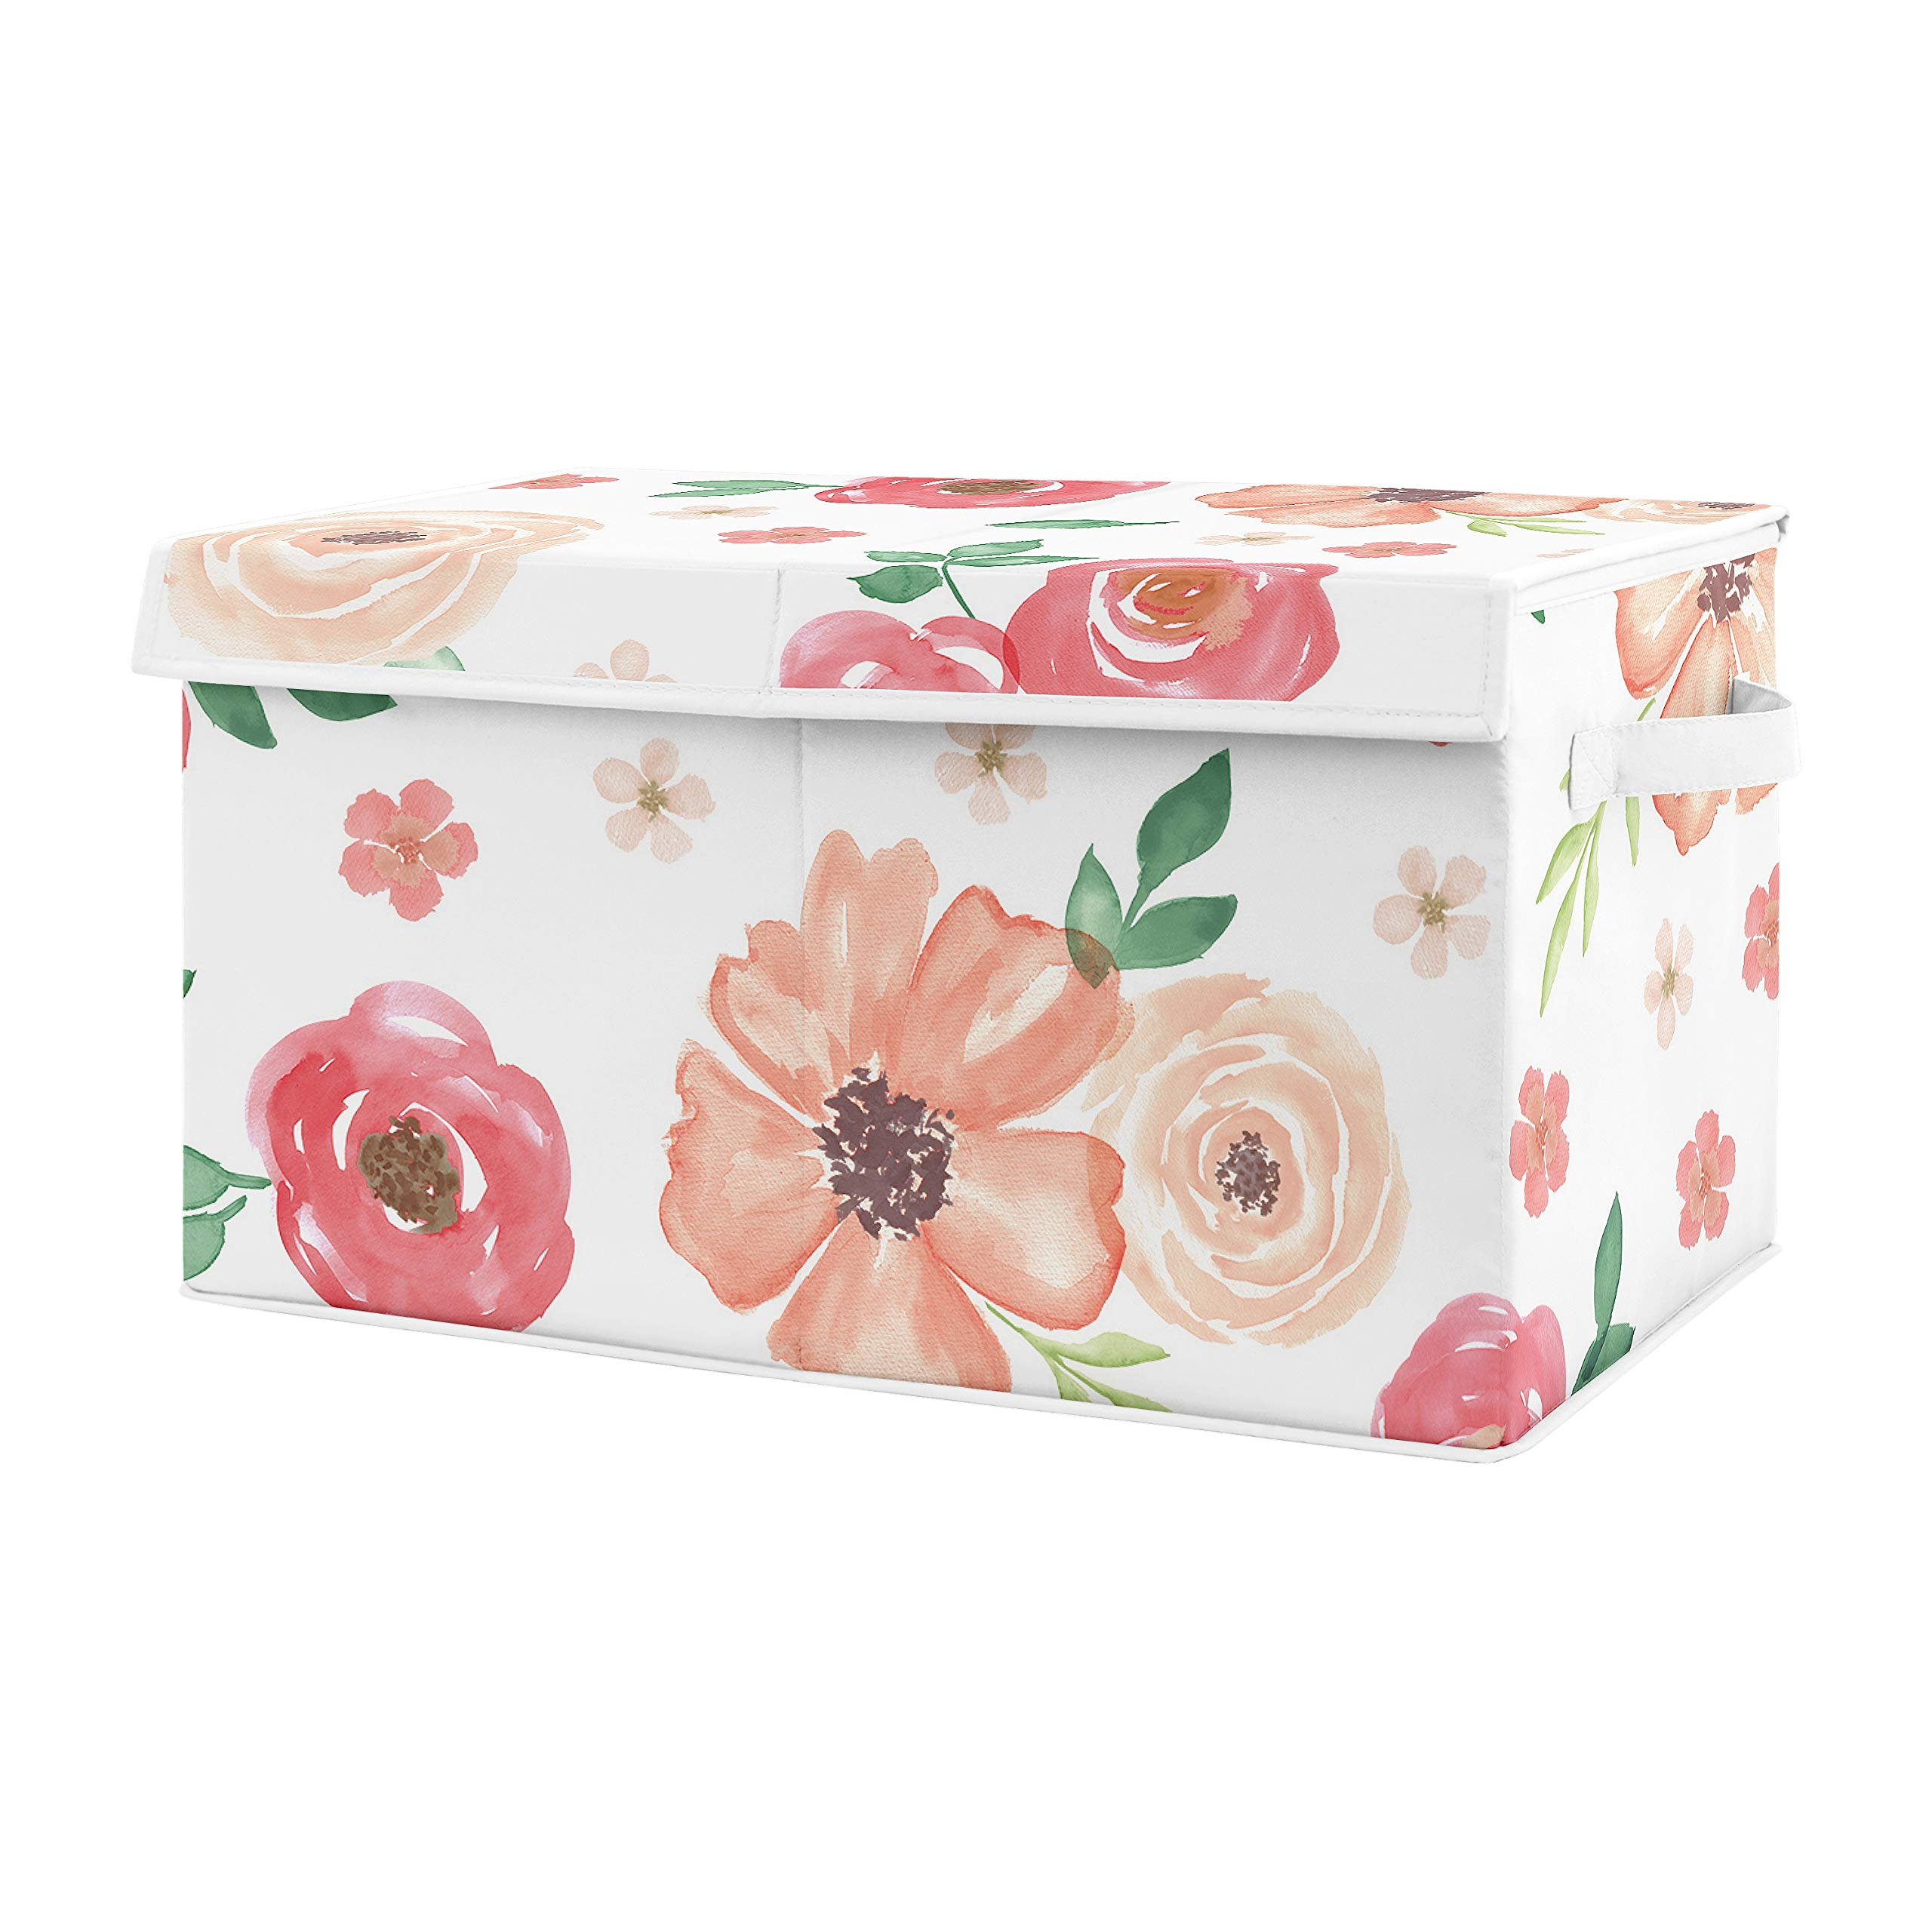 Sweet Jojo Designs Peach and Green Rose Flower Girl Baby Nursery or Kids Room Small Fabric Toy Bin Storage Box Chest for Watercolor Floral Collection by Sweet Jojo Designs